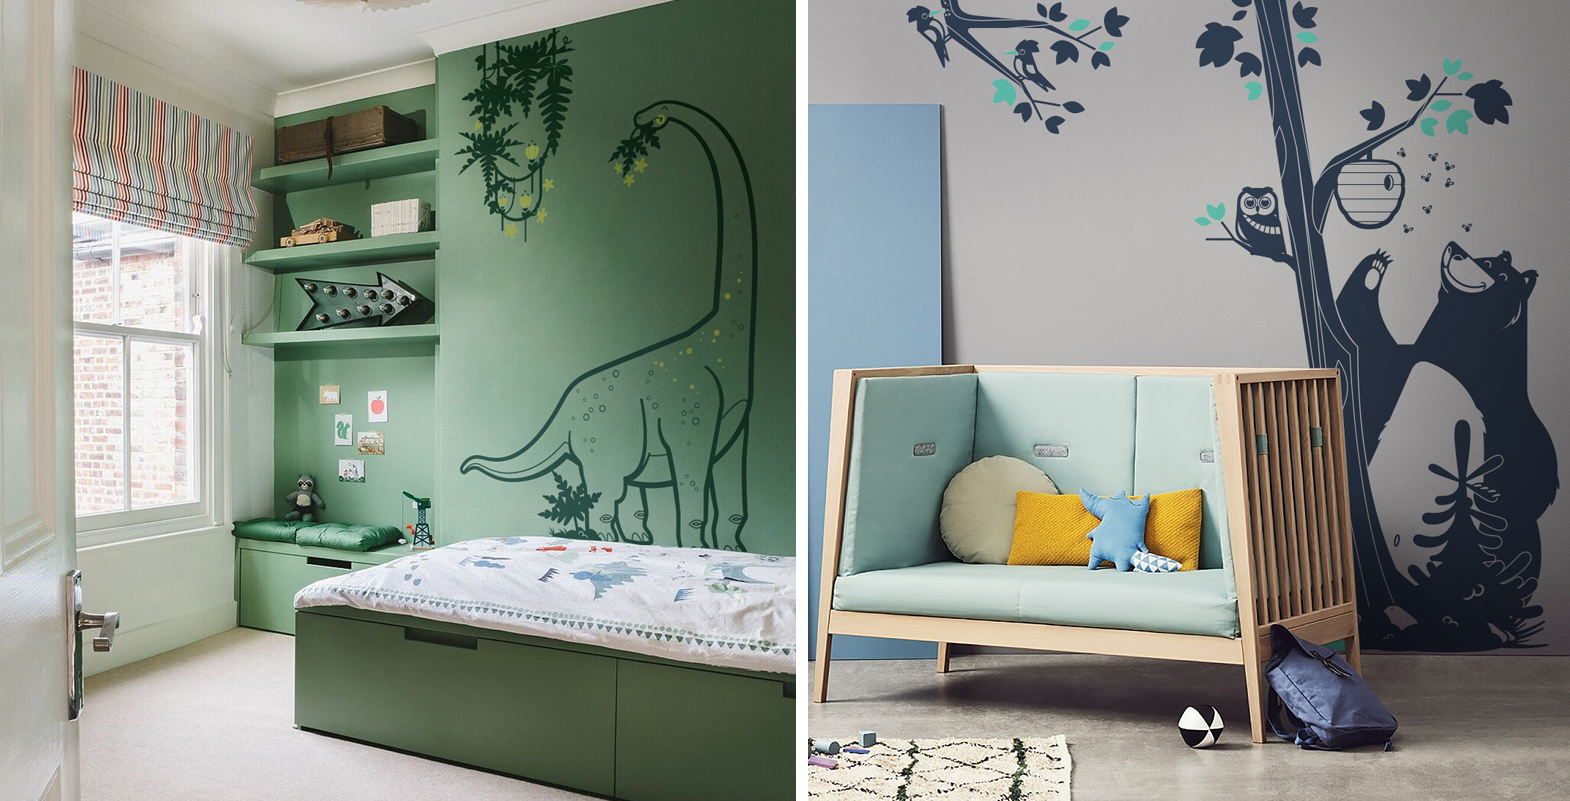 kids wall stickers and matching paint for children's bedroom decor